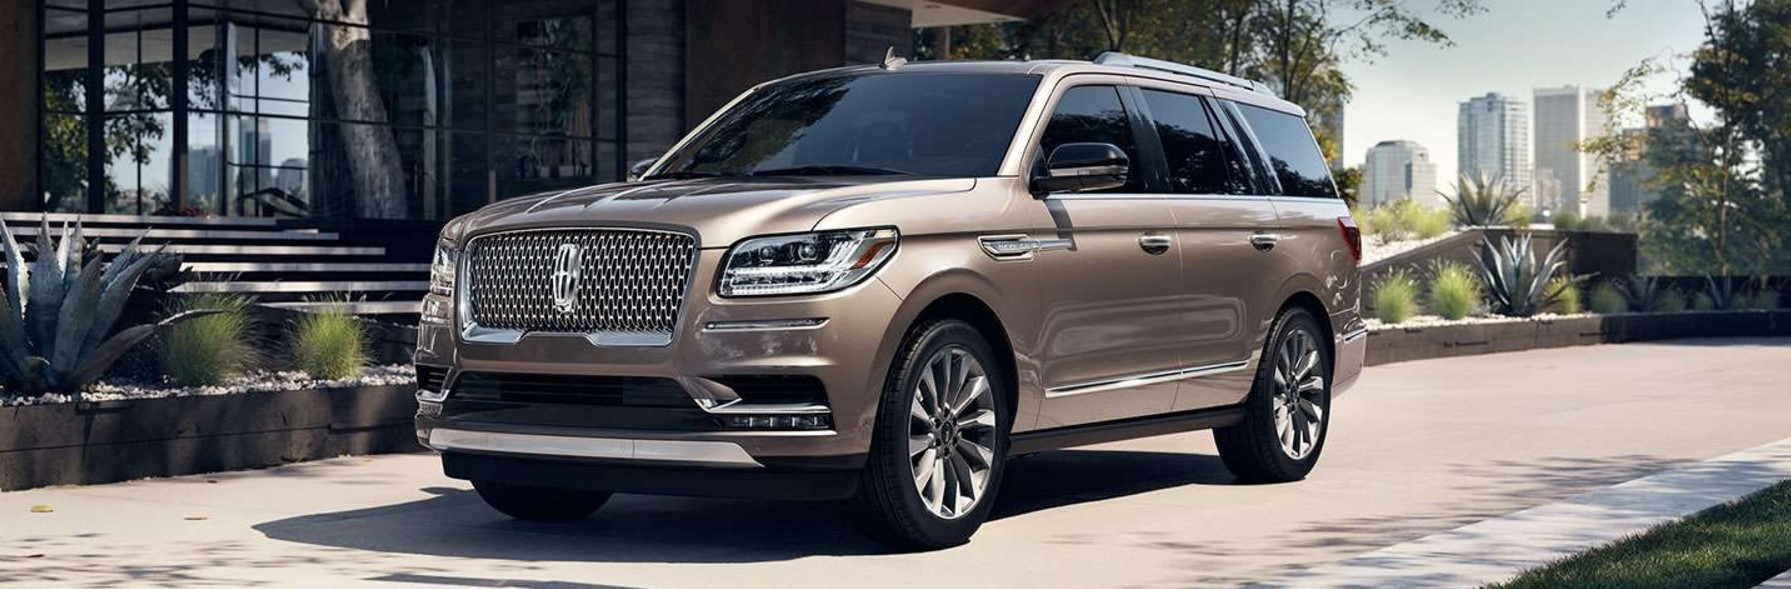 picture of a brand new lincoln navigator suv